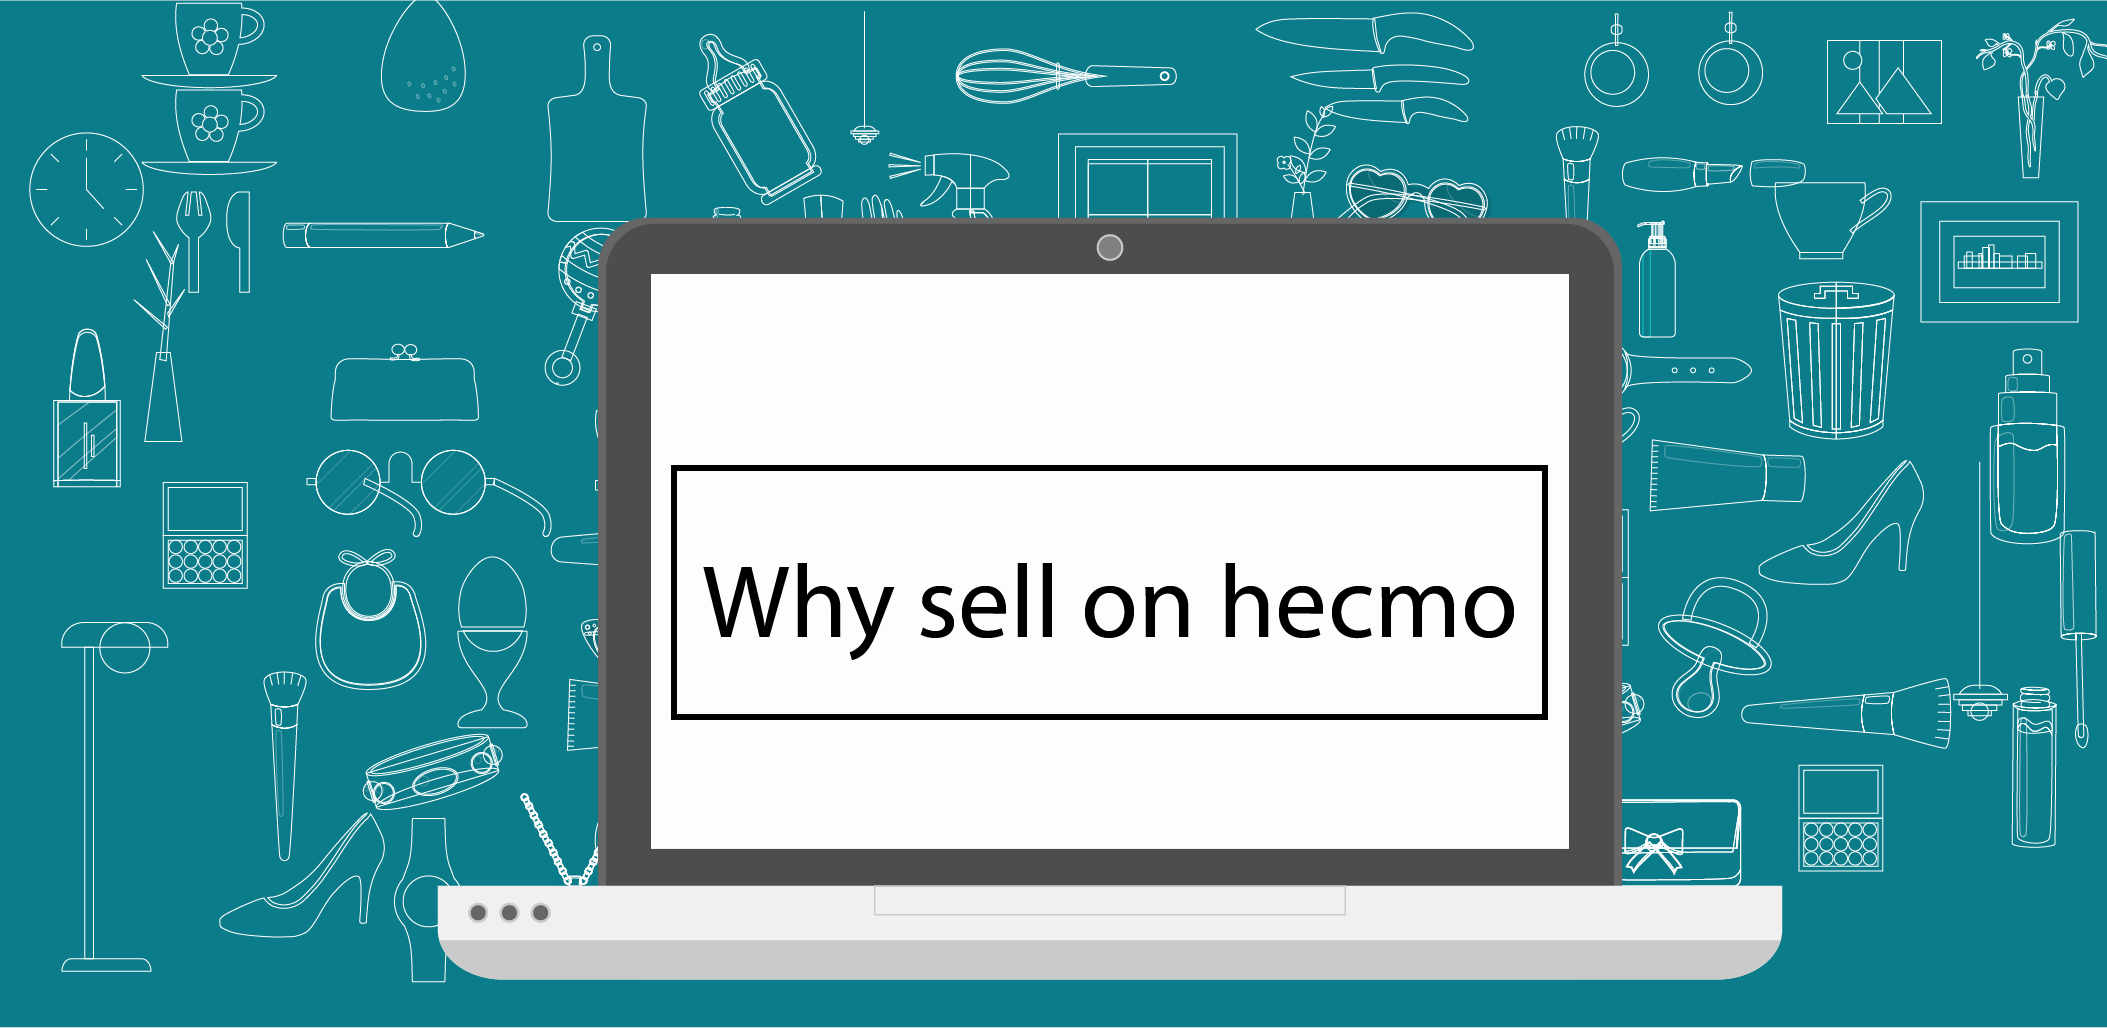 Why sell on Hecmo